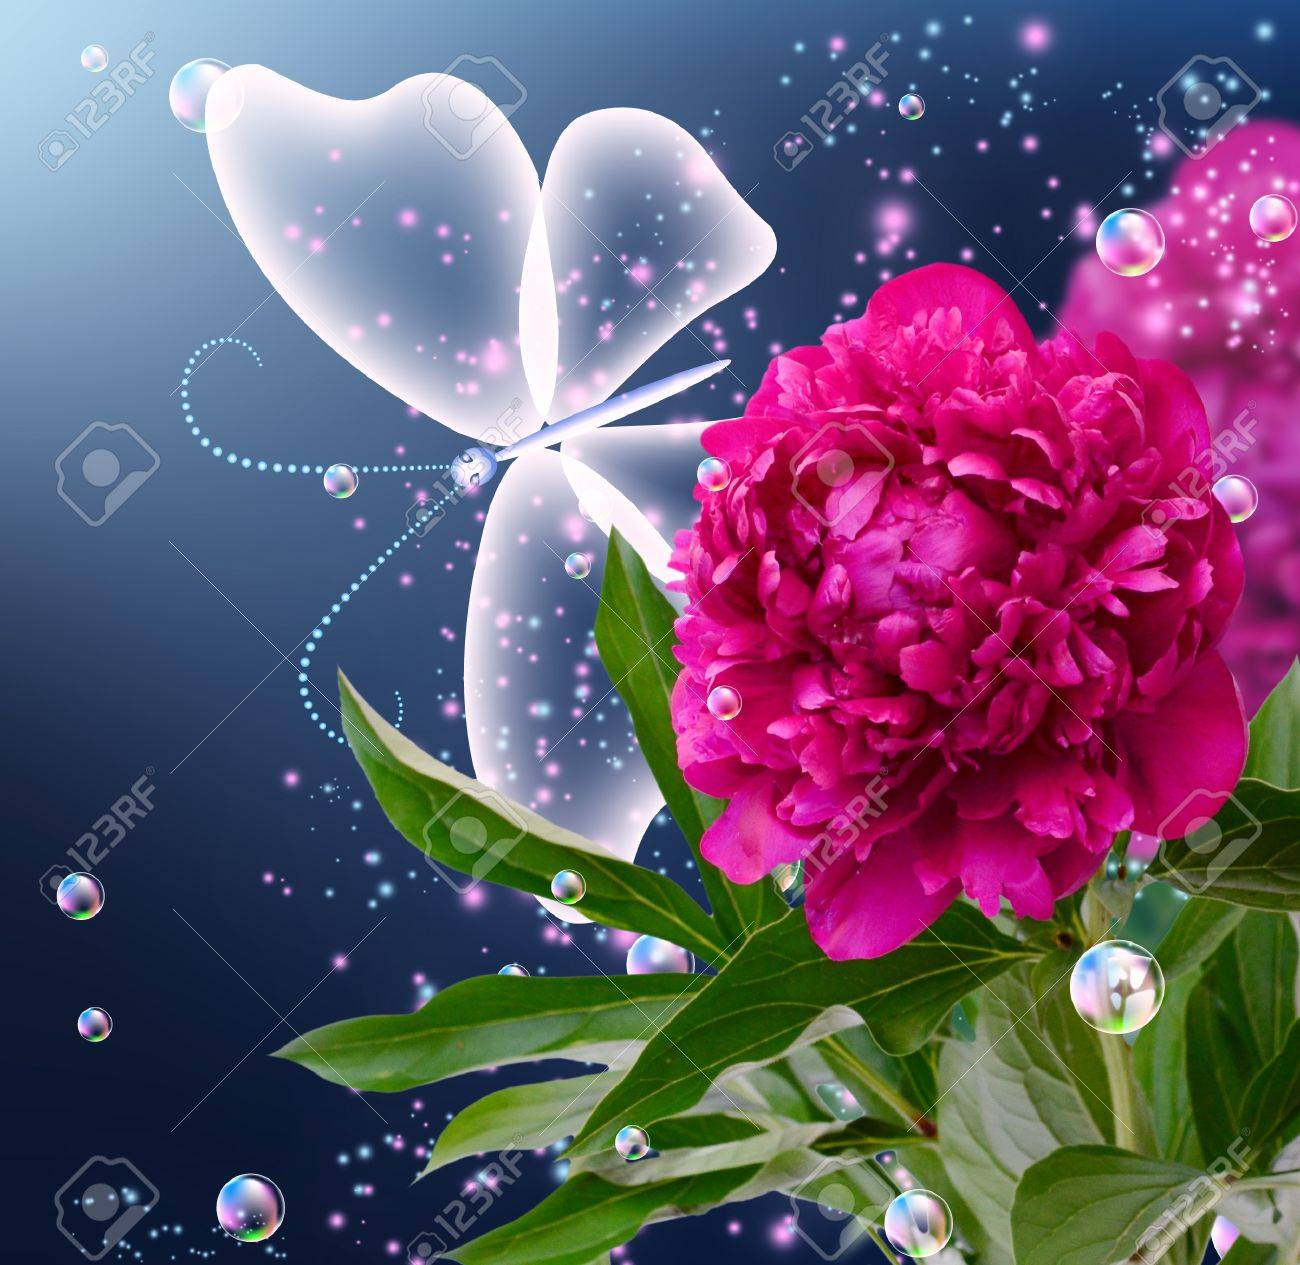 Peony, bubbles and butterfly - 13912984